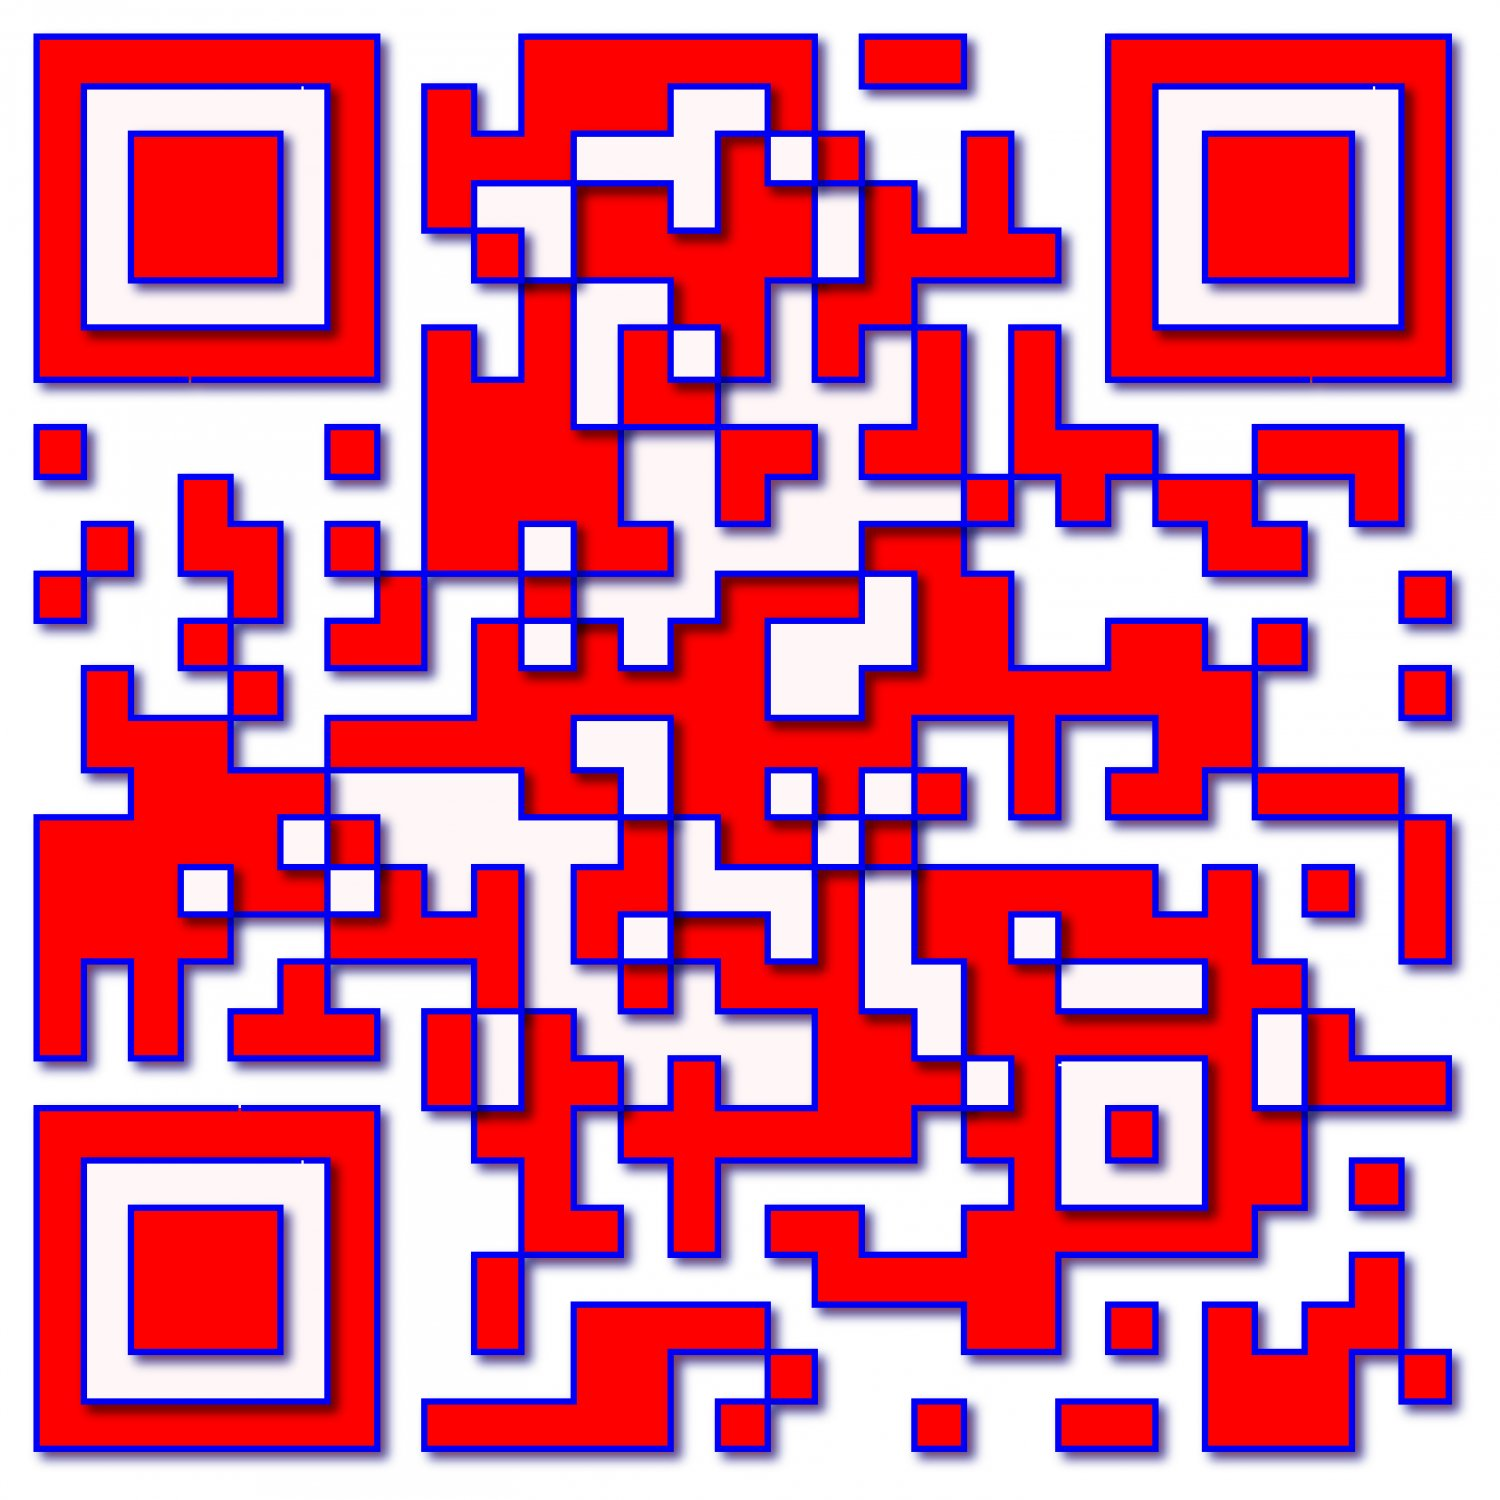 Art and the Zen of QR Codes - by Tony Karp